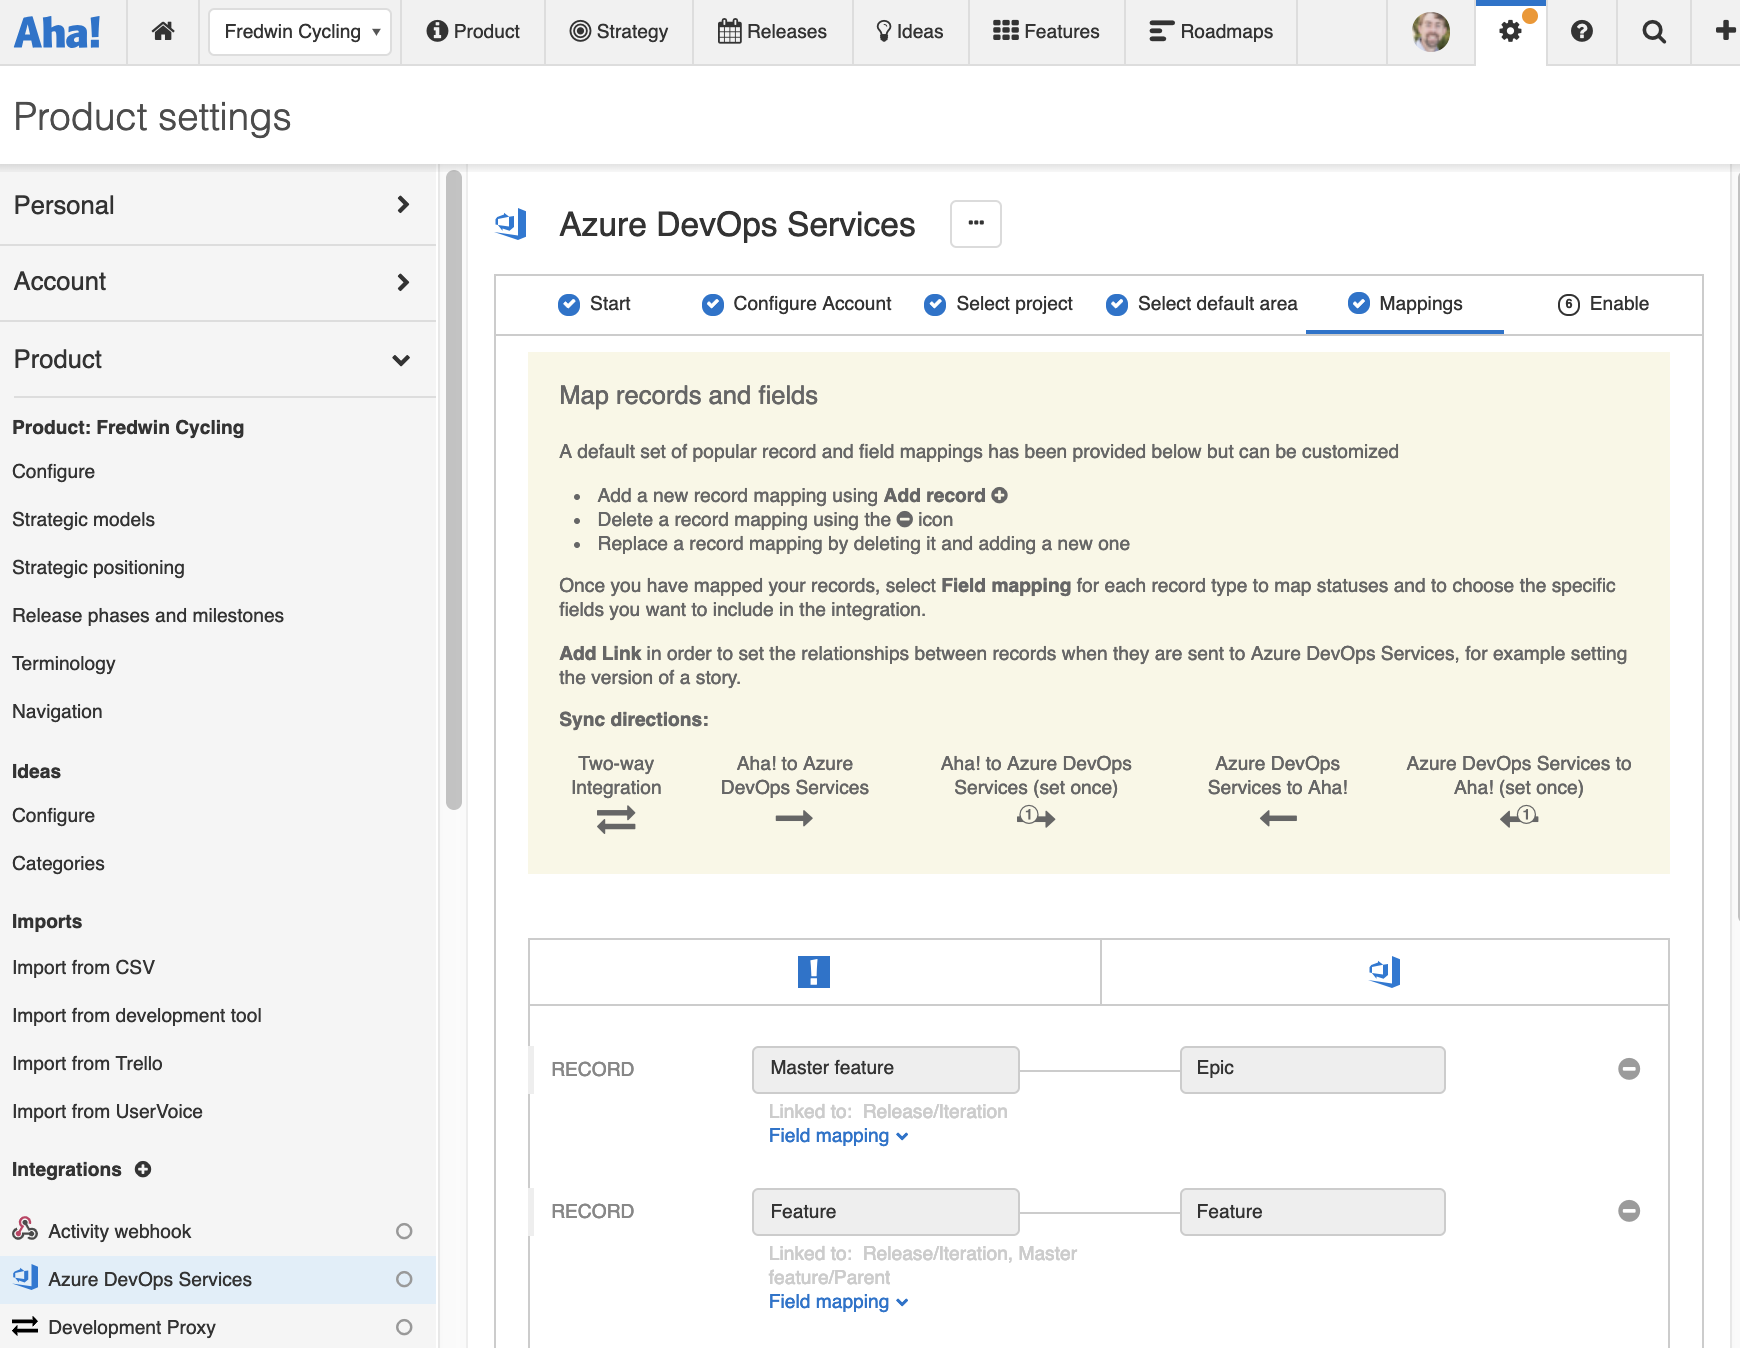 Support - Integrate Aha! with Azure DevOps Services or Azure DevOps Server (integrations 2.0) - inline image